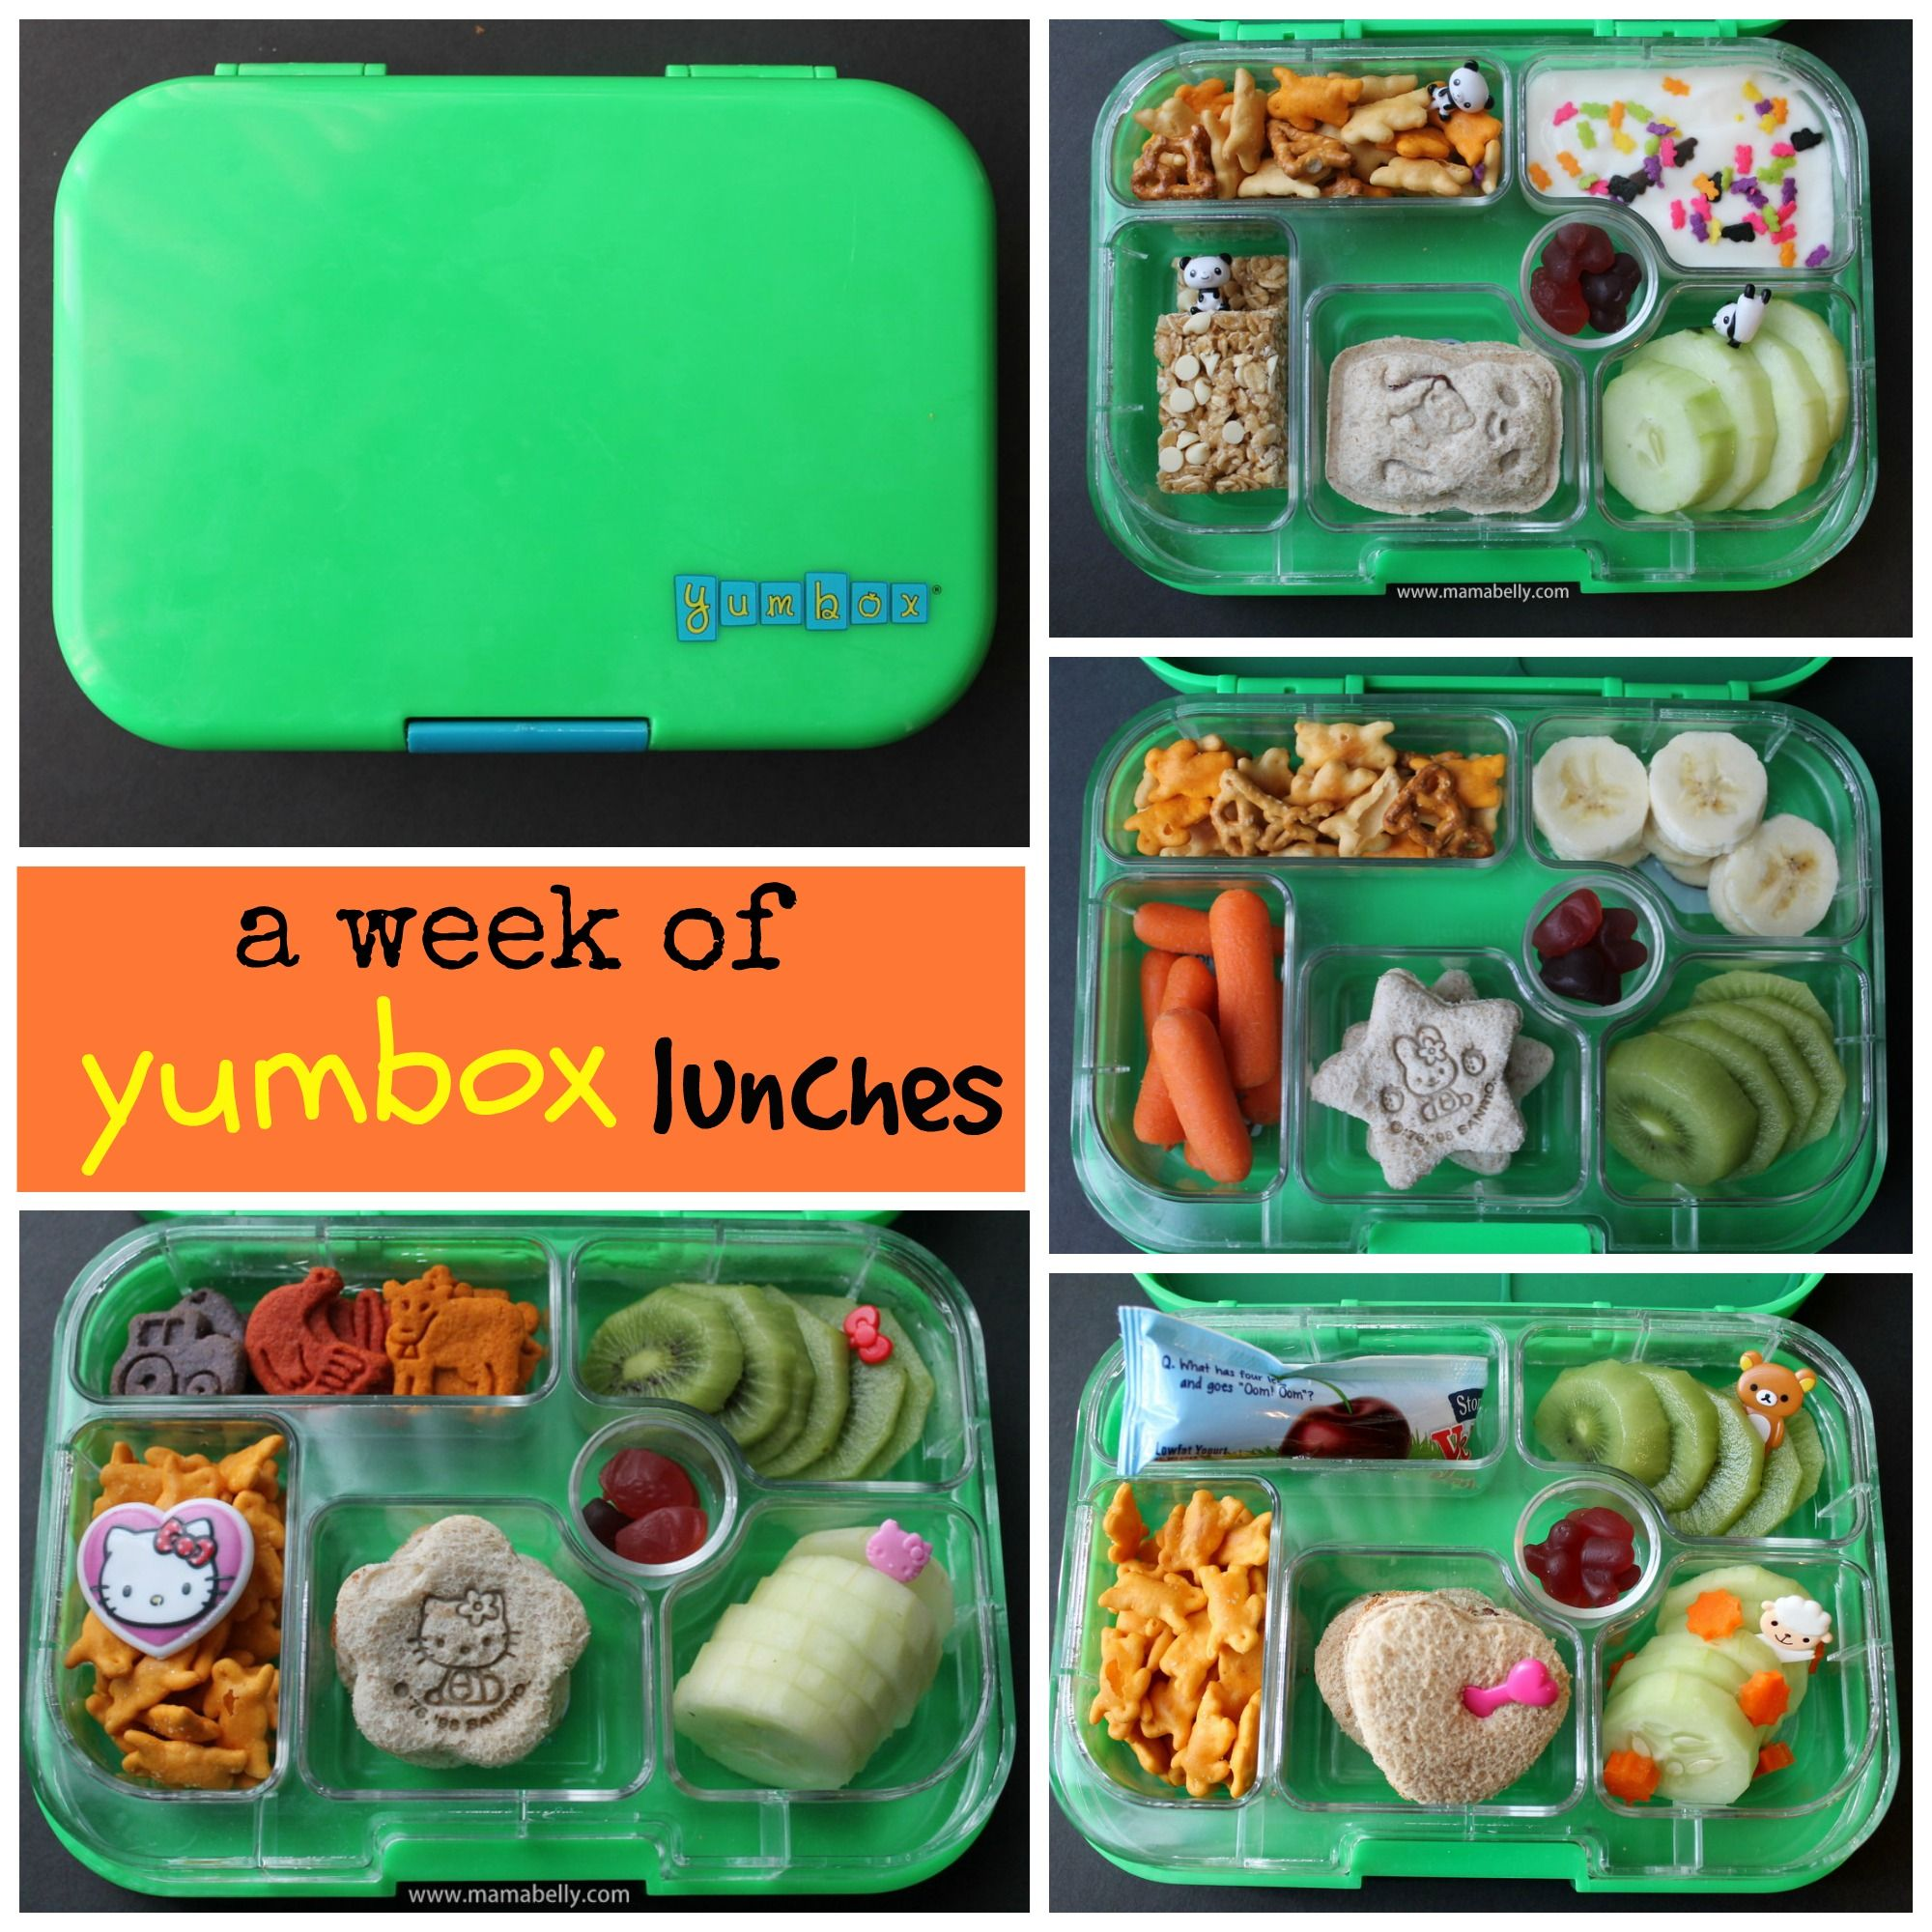 a week of yumbox lunches brotzeitbox mal anders pinterest brotdose schule. Black Bedroom Furniture Sets. Home Design Ideas